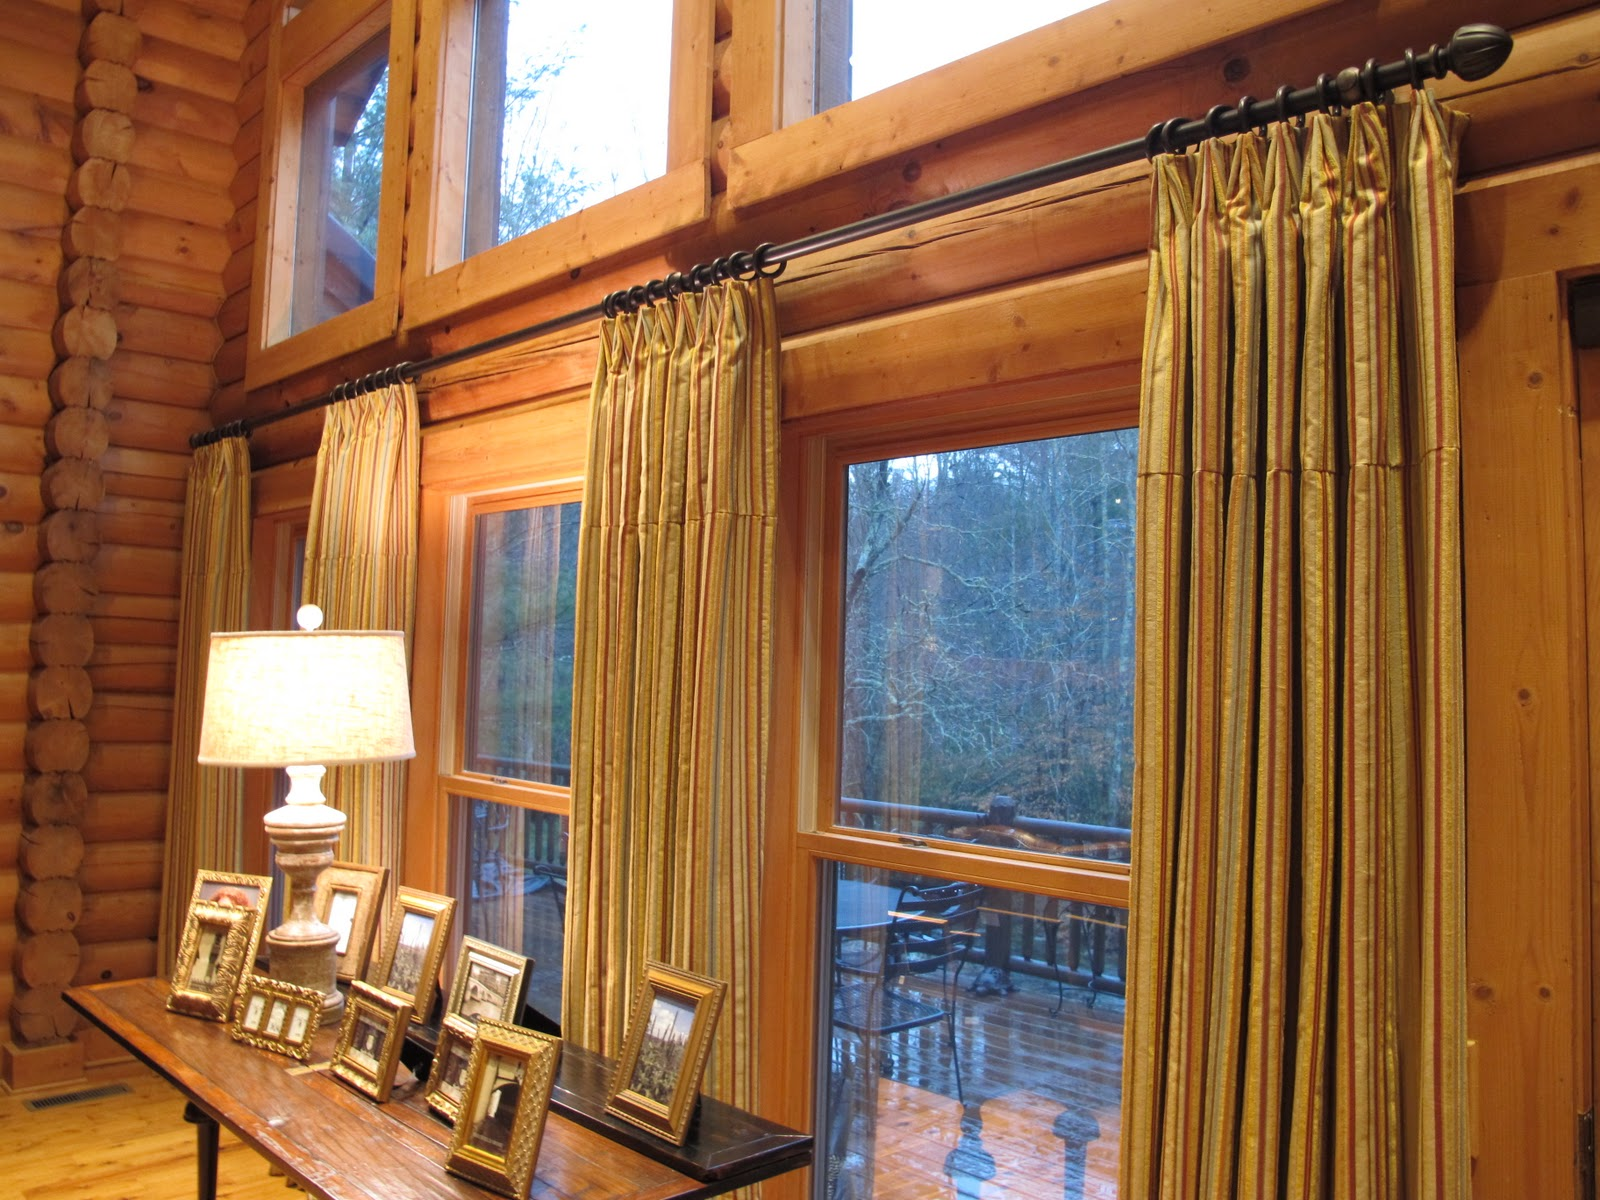 Sew bee it dressing up windows beauty and functionality for Windows for log cabins